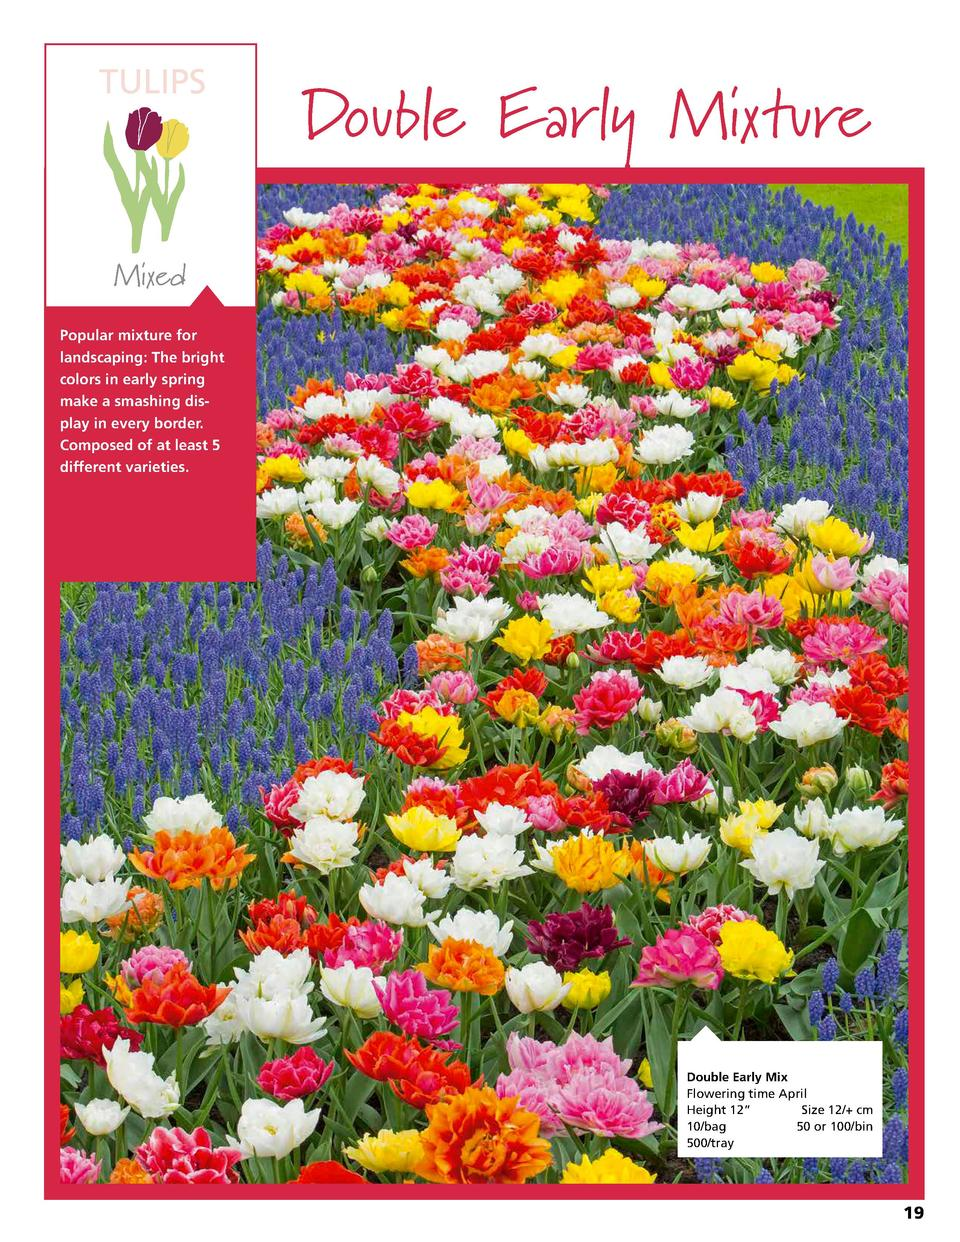 TULIPS  Double Early Mixture  Mixed Popular mixture for landscaping  The bright colors in early spring make a smashing dis...